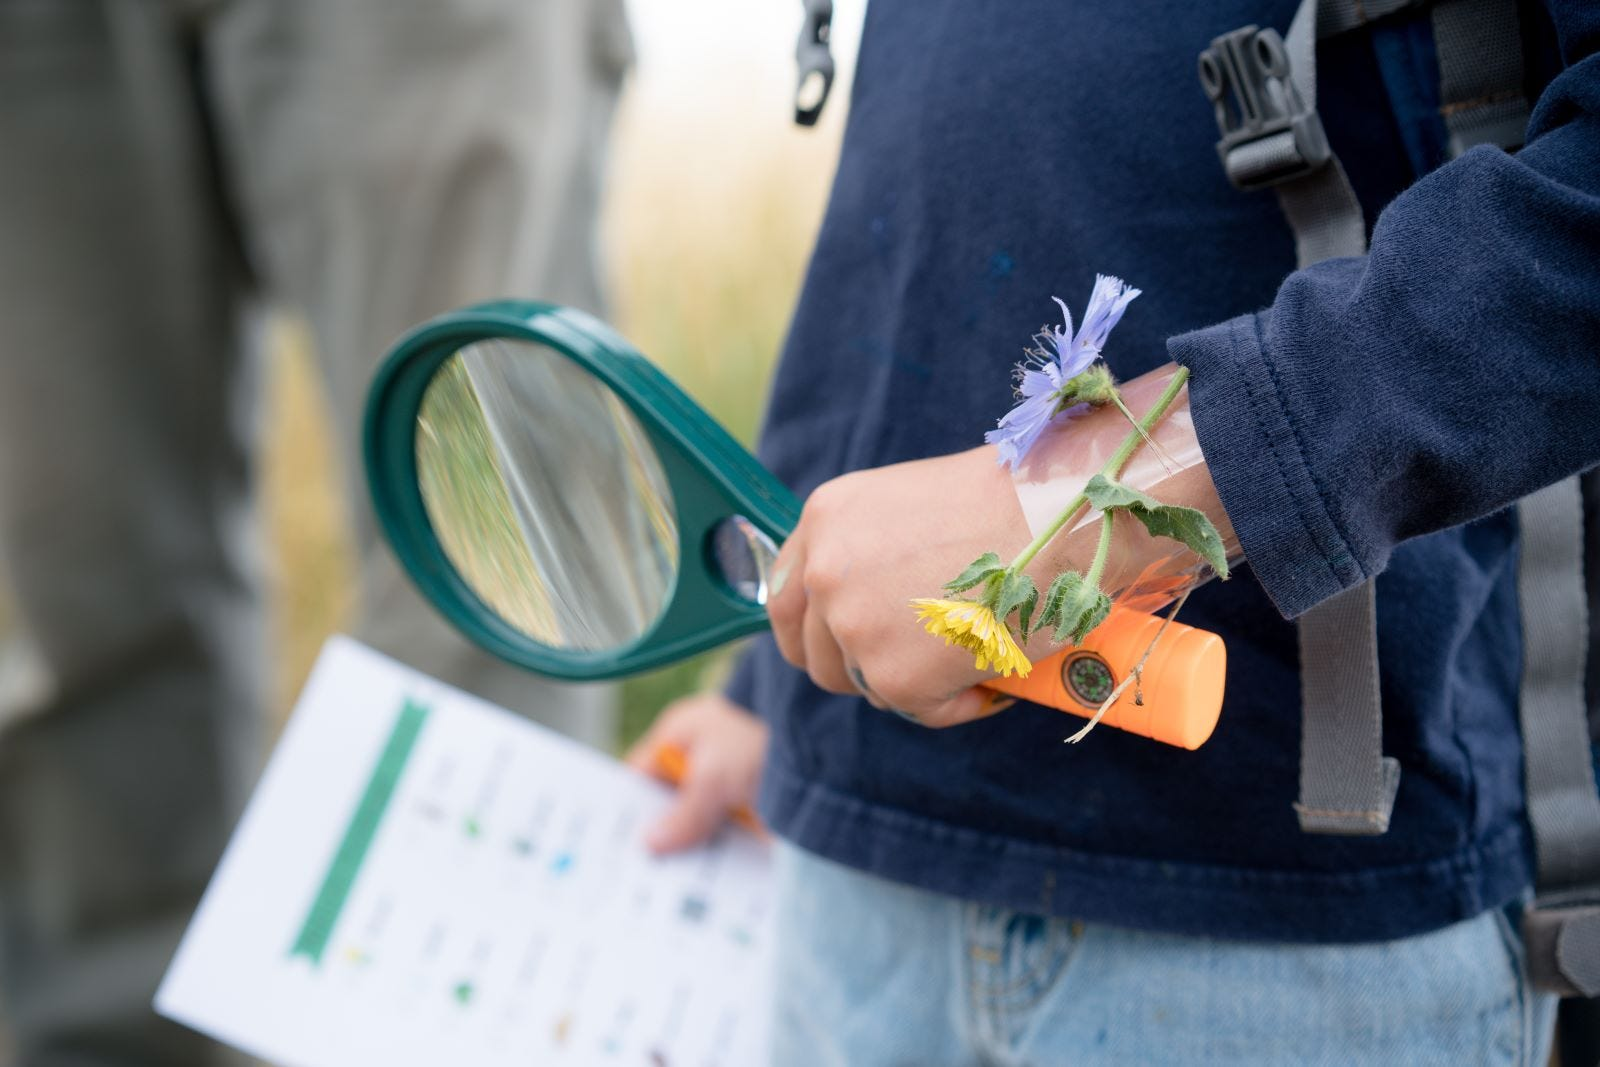 A child holding a magnifying glass and a list for a scavenger hunt.